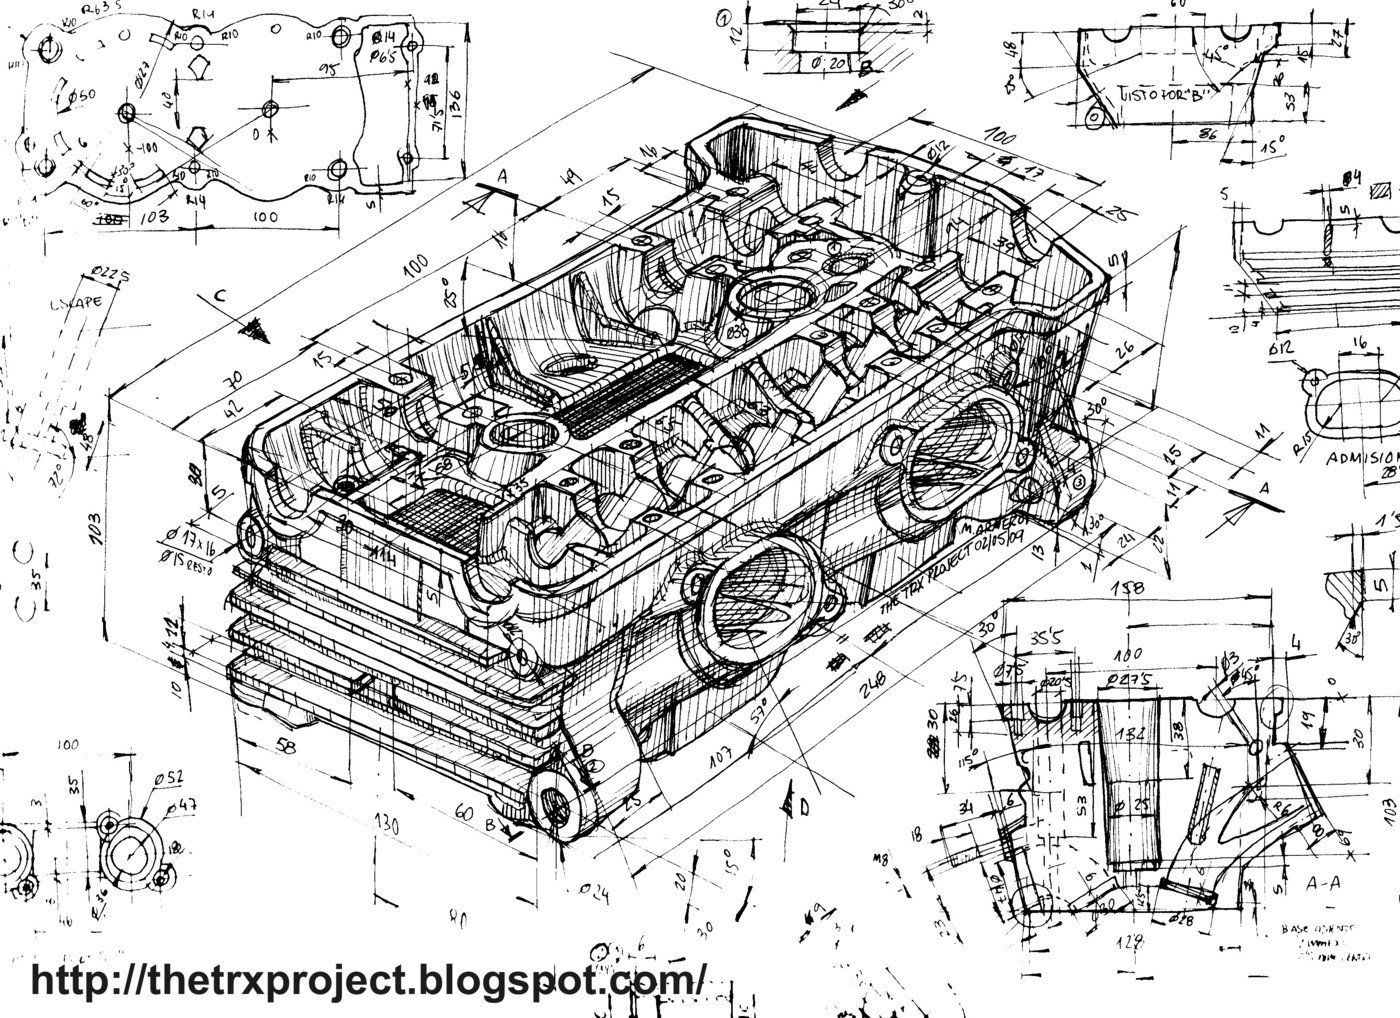 Trx 850 And Nsr 125 Sketches By Marcos Armero At Coroflot